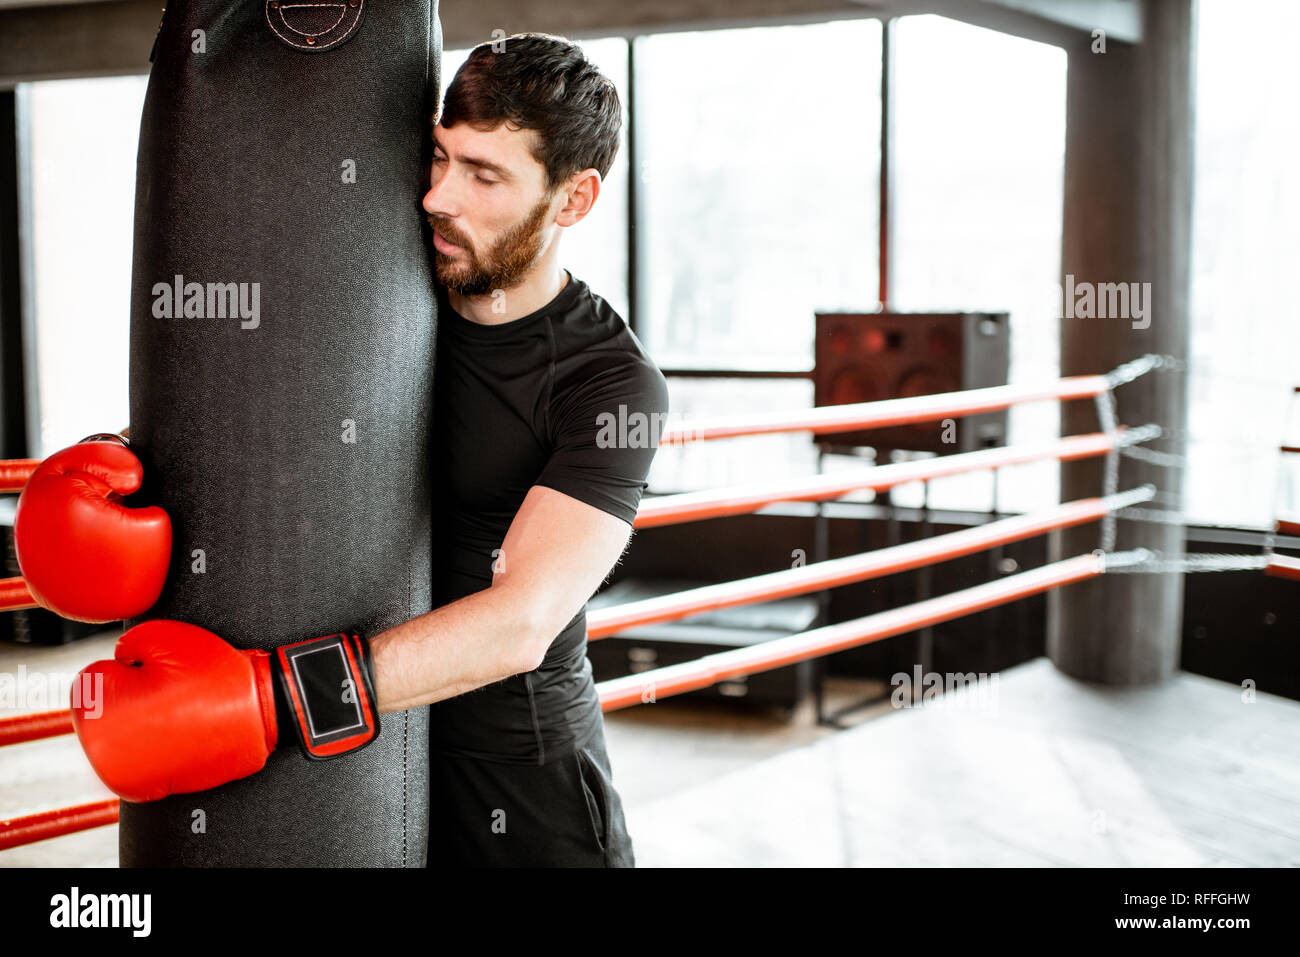 Exhausted man hugging punching bag after the training on the boxing ring at the gym - Stock Image